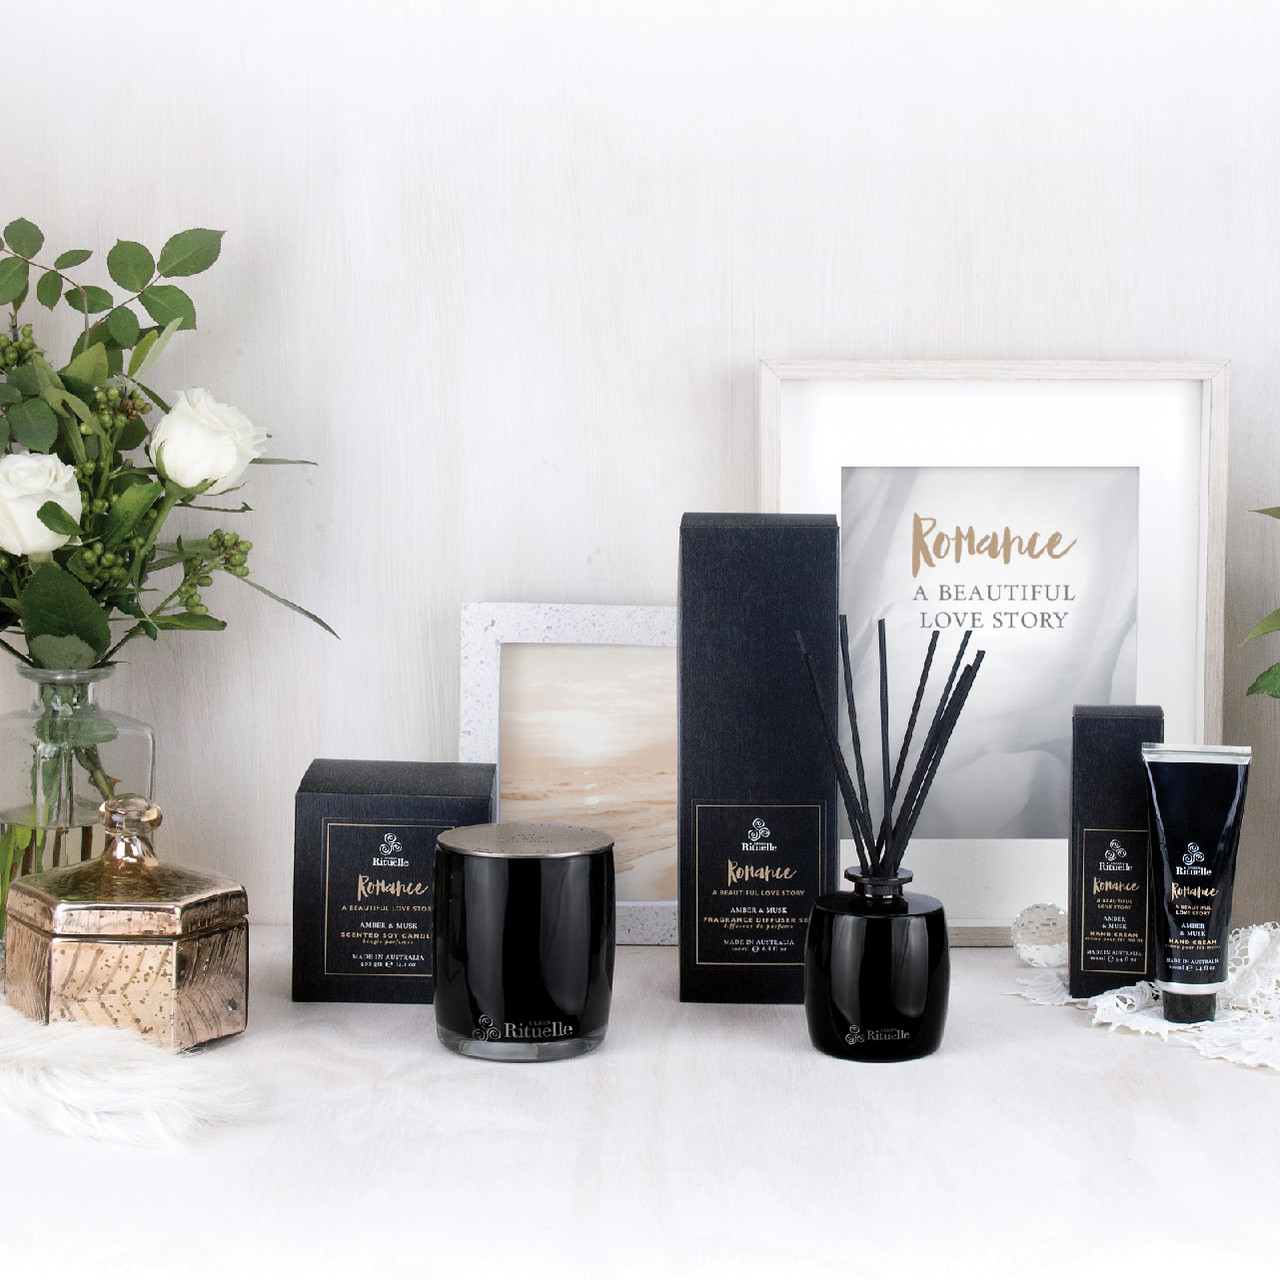 Scented Offerings - Romance - Amber & Musk - Urban Rituelle